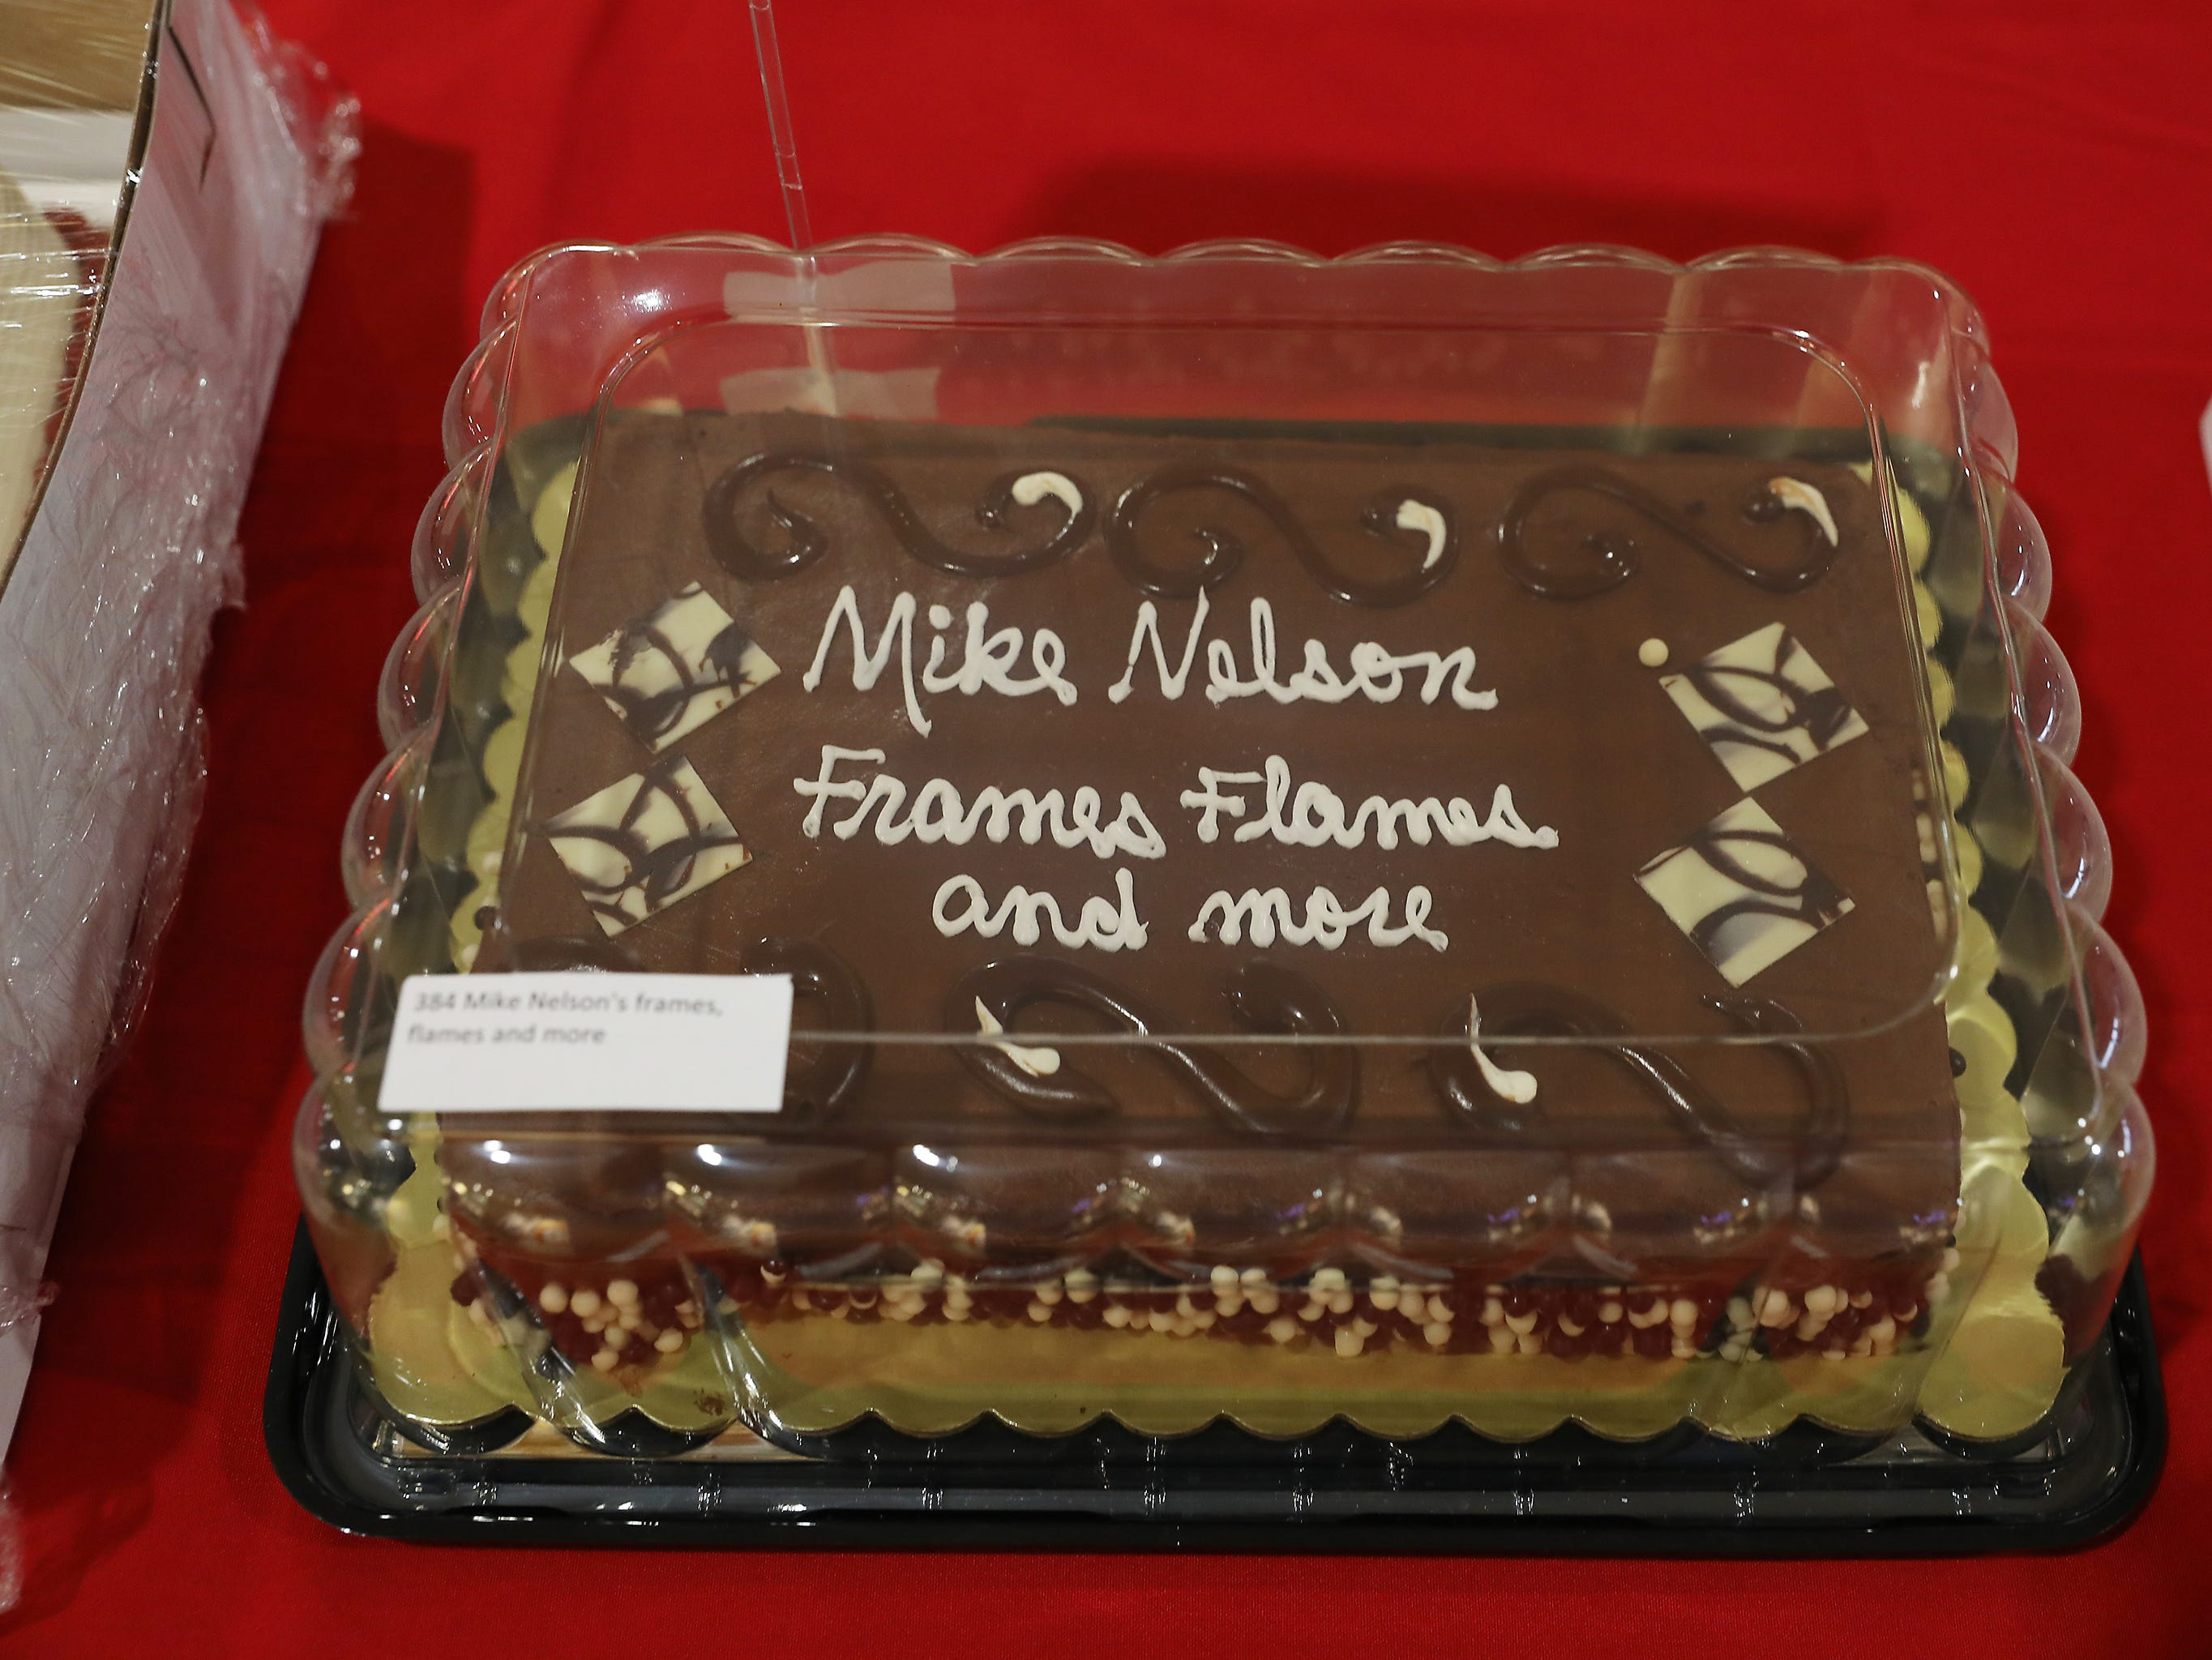 4:30 P.M. Friday cake 384 Mike Nelson's frames, flames and more